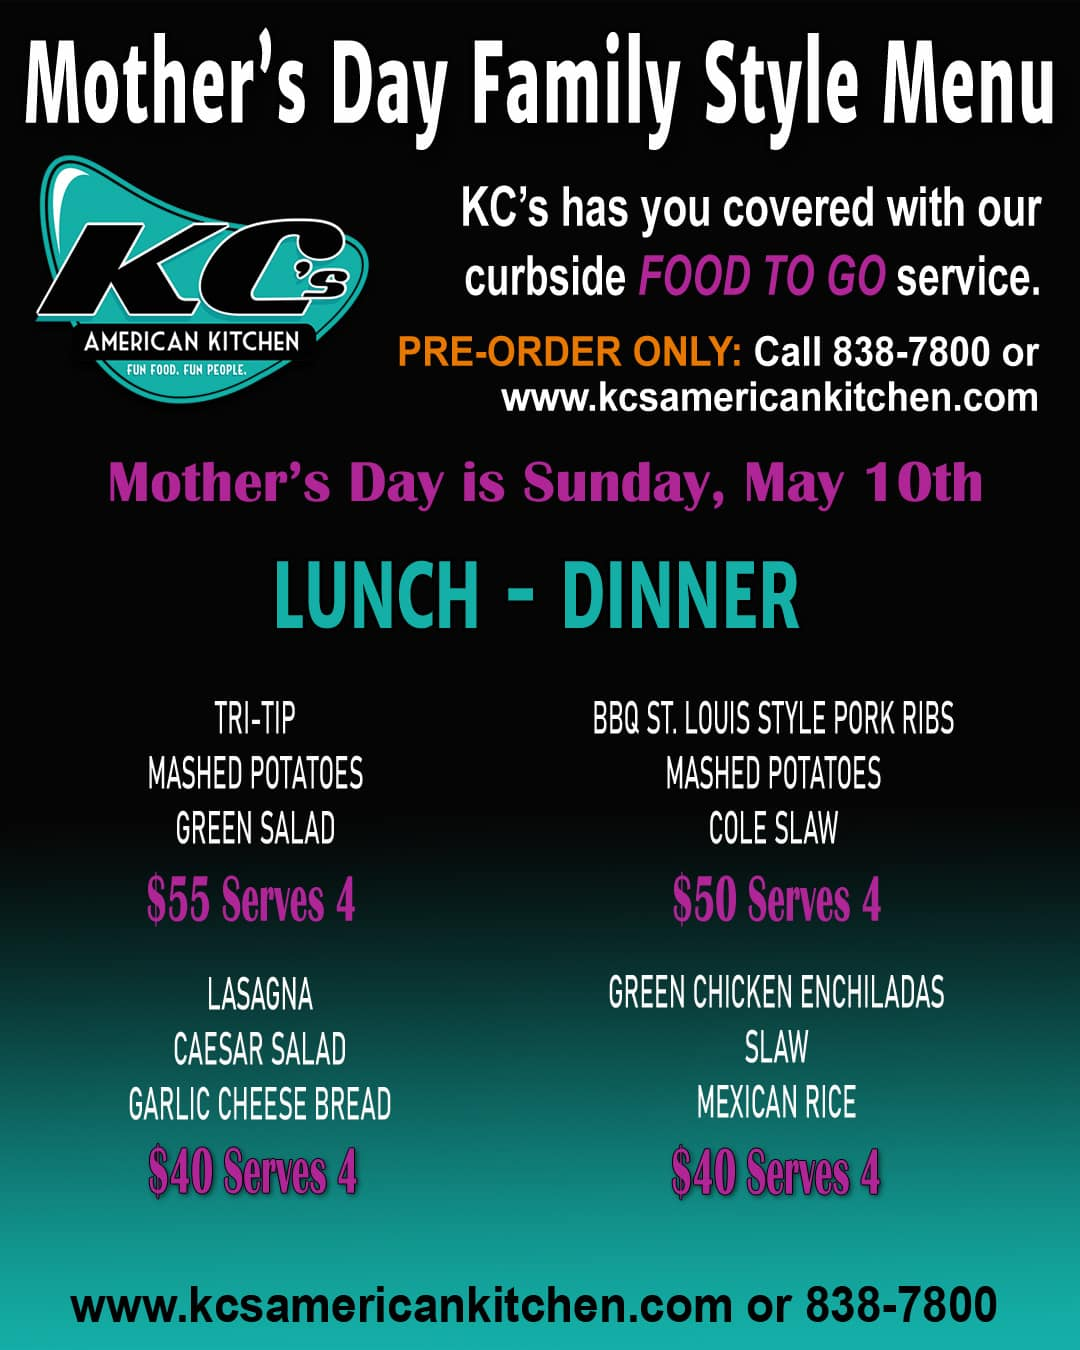 Mother's Day lunch and dinner to go at KC's American Kitchen in Windsor, CA.